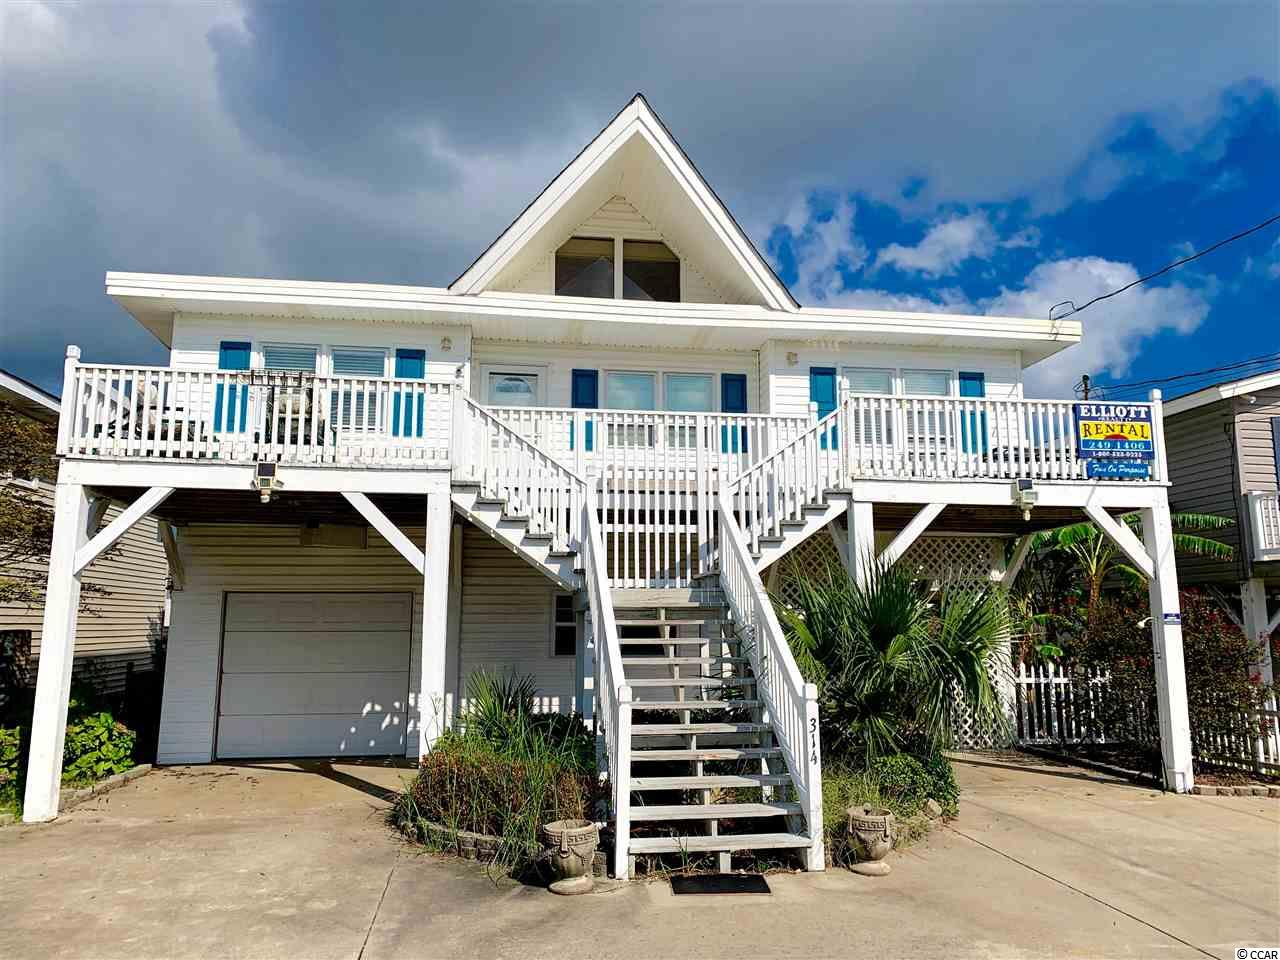 This is a hard to find Cherry Grove raised beach home with 4 bedrooms and 2 baths on the top floor.  The bottom floor presents an opportunity for potential buyers since it has a living room with tile floor, kitchen, bedroom, and full bath on the ground level that is heated and cooled.  This gives the home a 5th bedroom for larger families, older adults, kids, and even pets. This home is a short walking distance to the beach and includes a private dock.  MOTIVATED SELLER....Bring ALL offers.